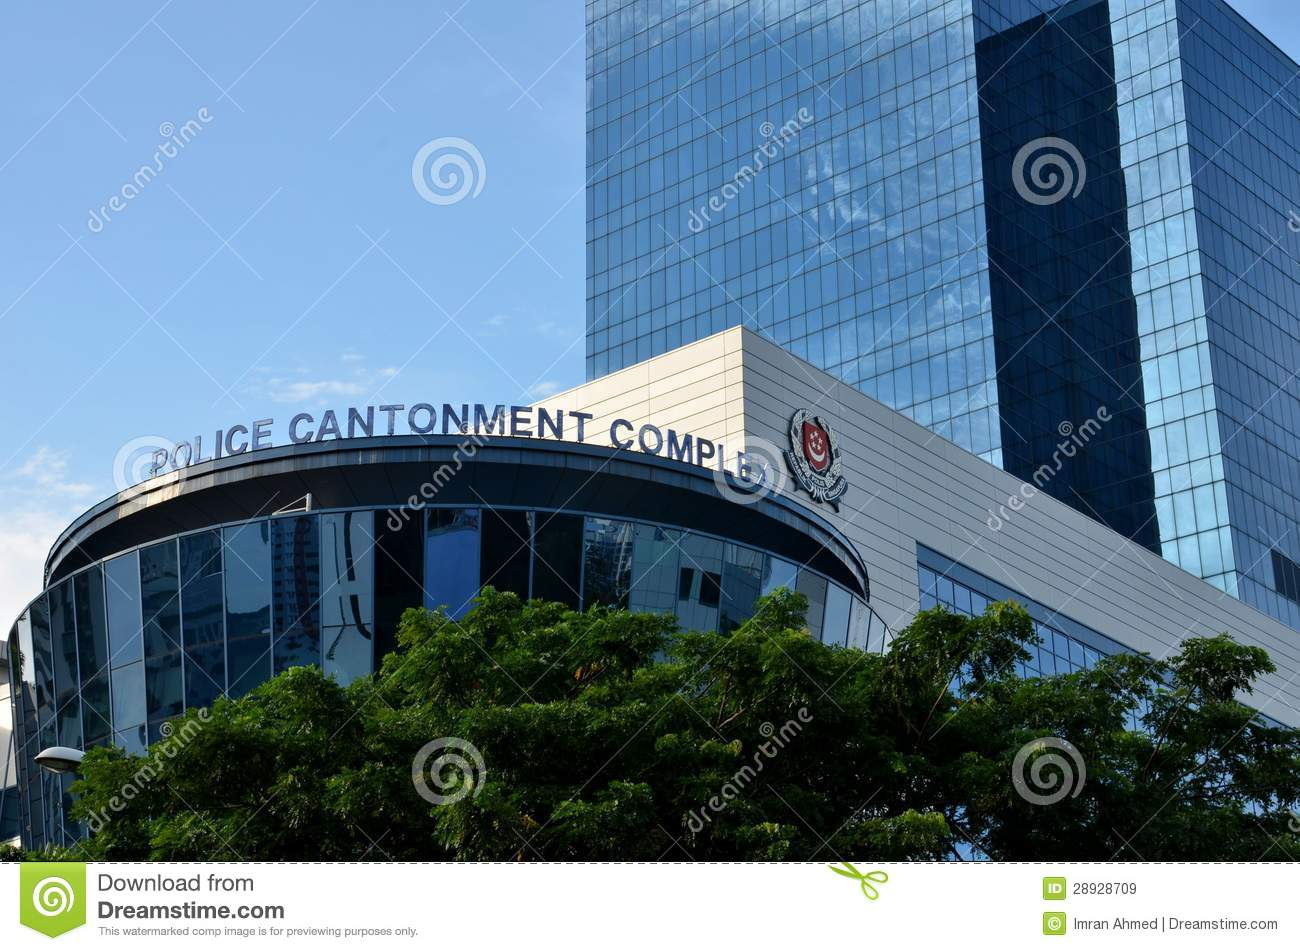 singapore police force cantonment complex building building clipart image building clipart with fire